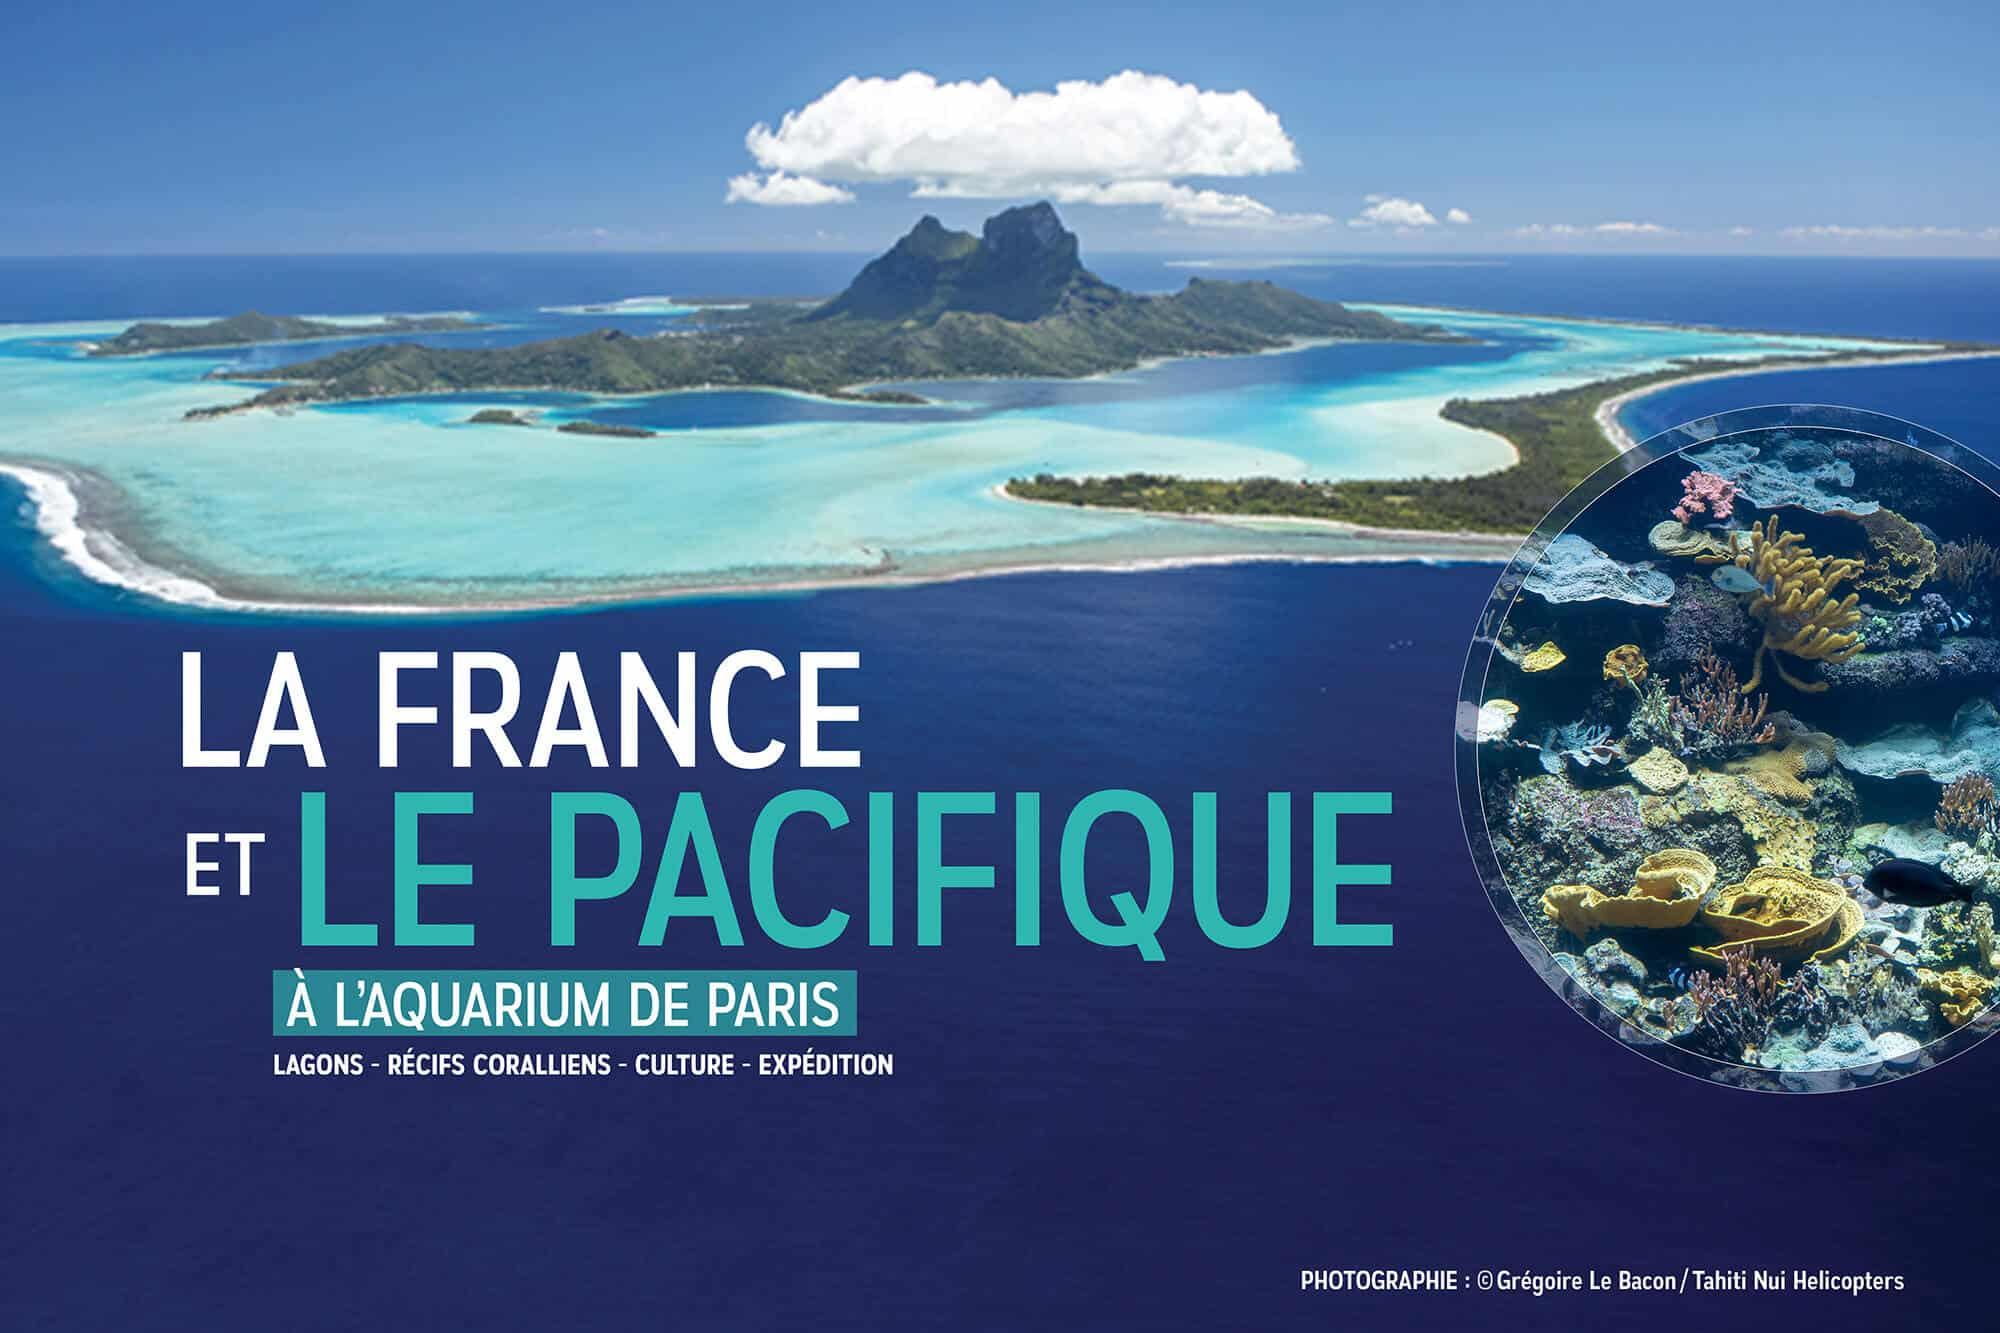 La France et le pacifique - Aquarium de Paris